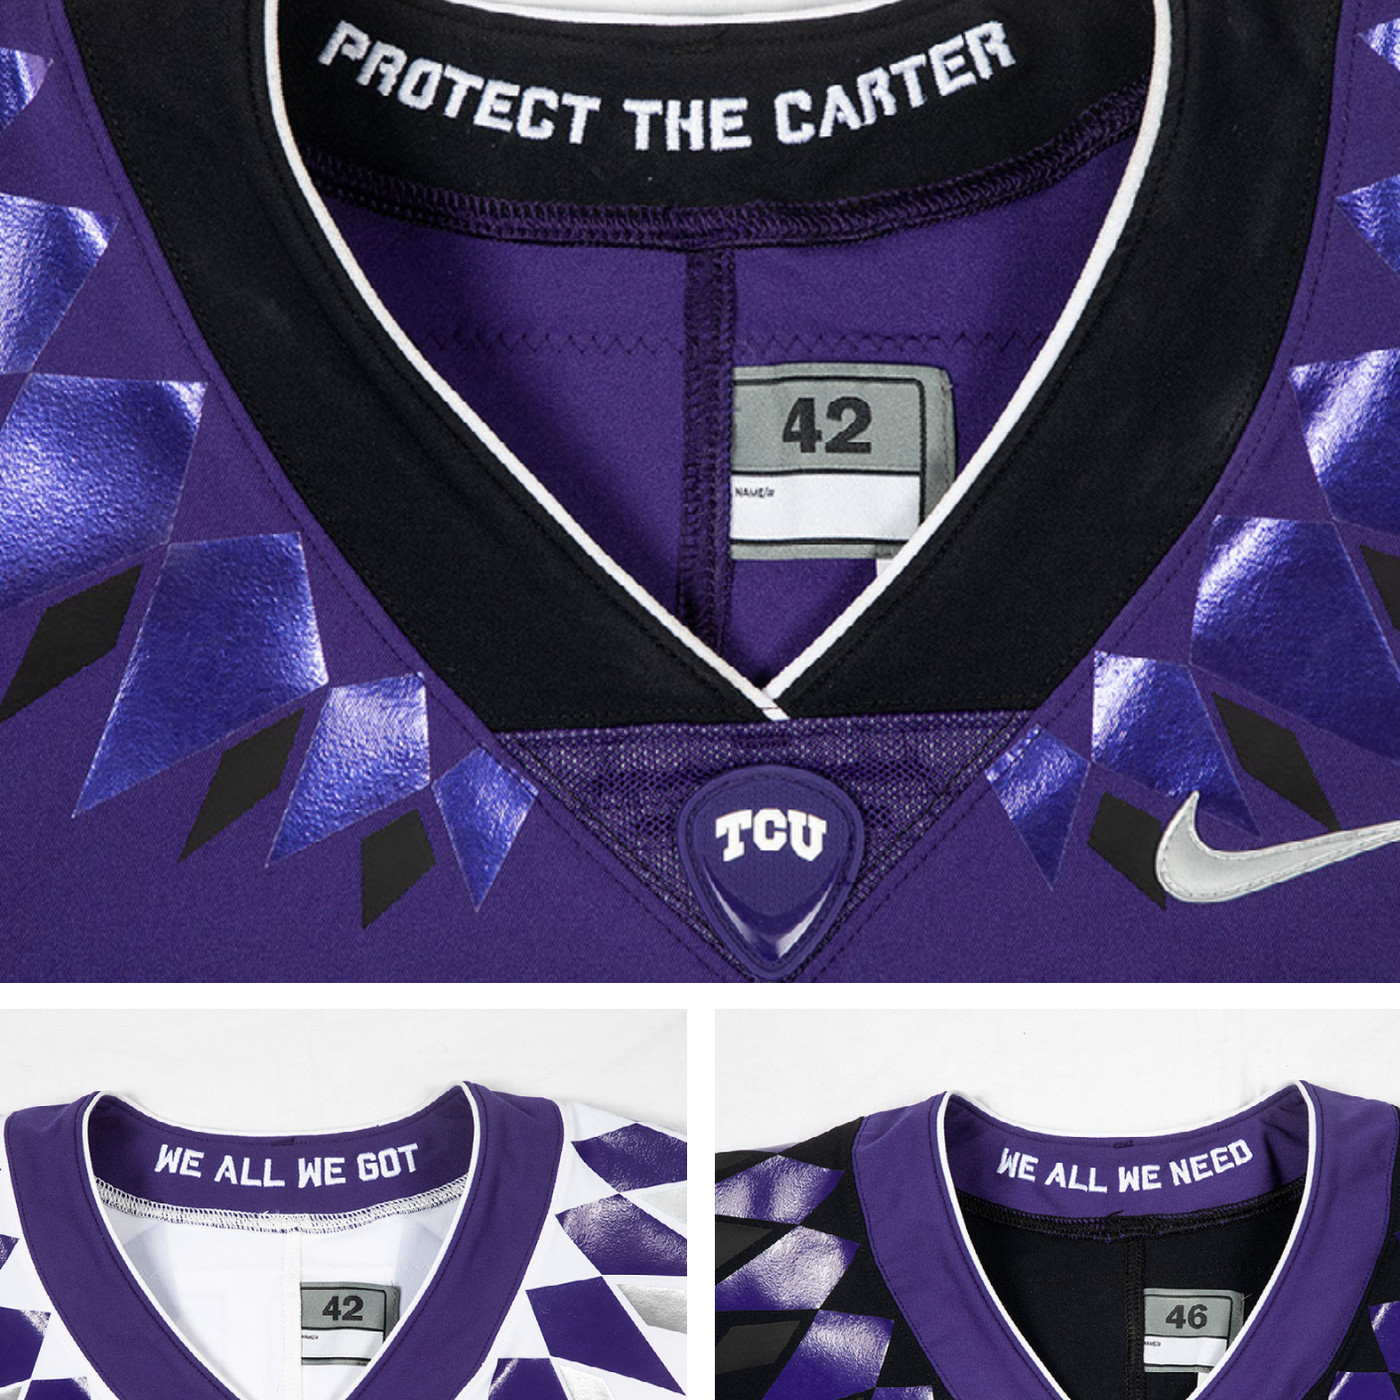 0946afa76 TCU Football revealed their uniforms Wednesday. Here's what people thought  about the new look.